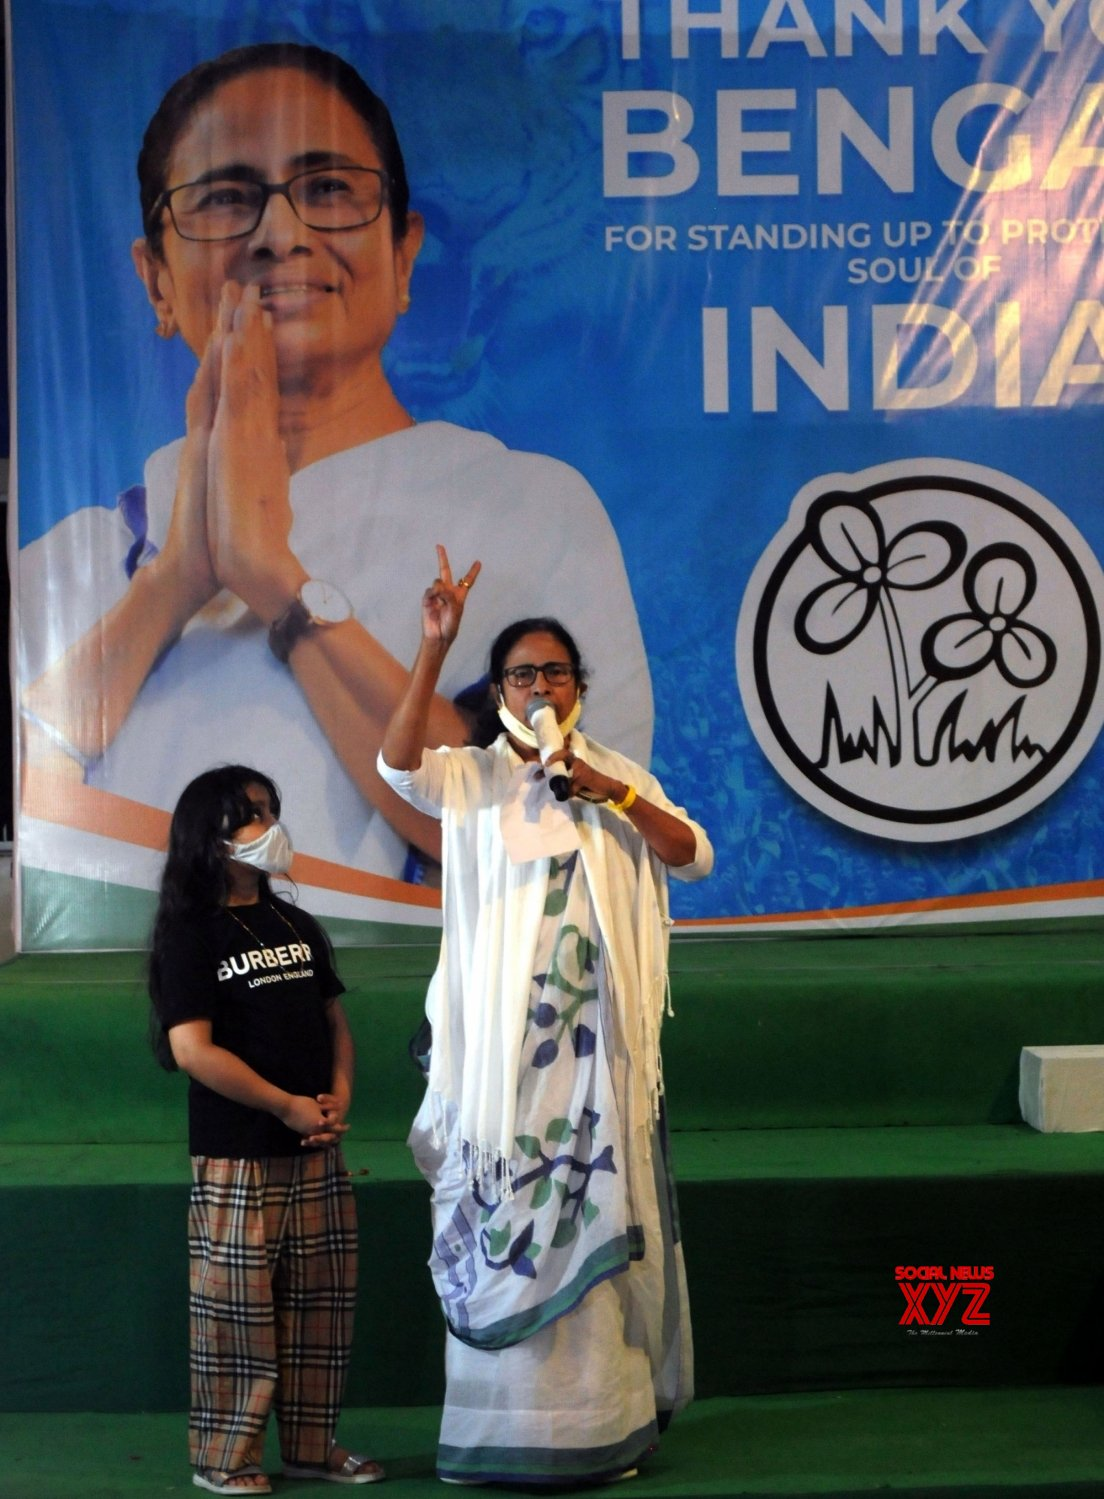 Kolkata : - TMC supremo Mamata Banerjee showing the victroy sign after winning a landslide victory in the West Bengal Assembly Election. #Gallery